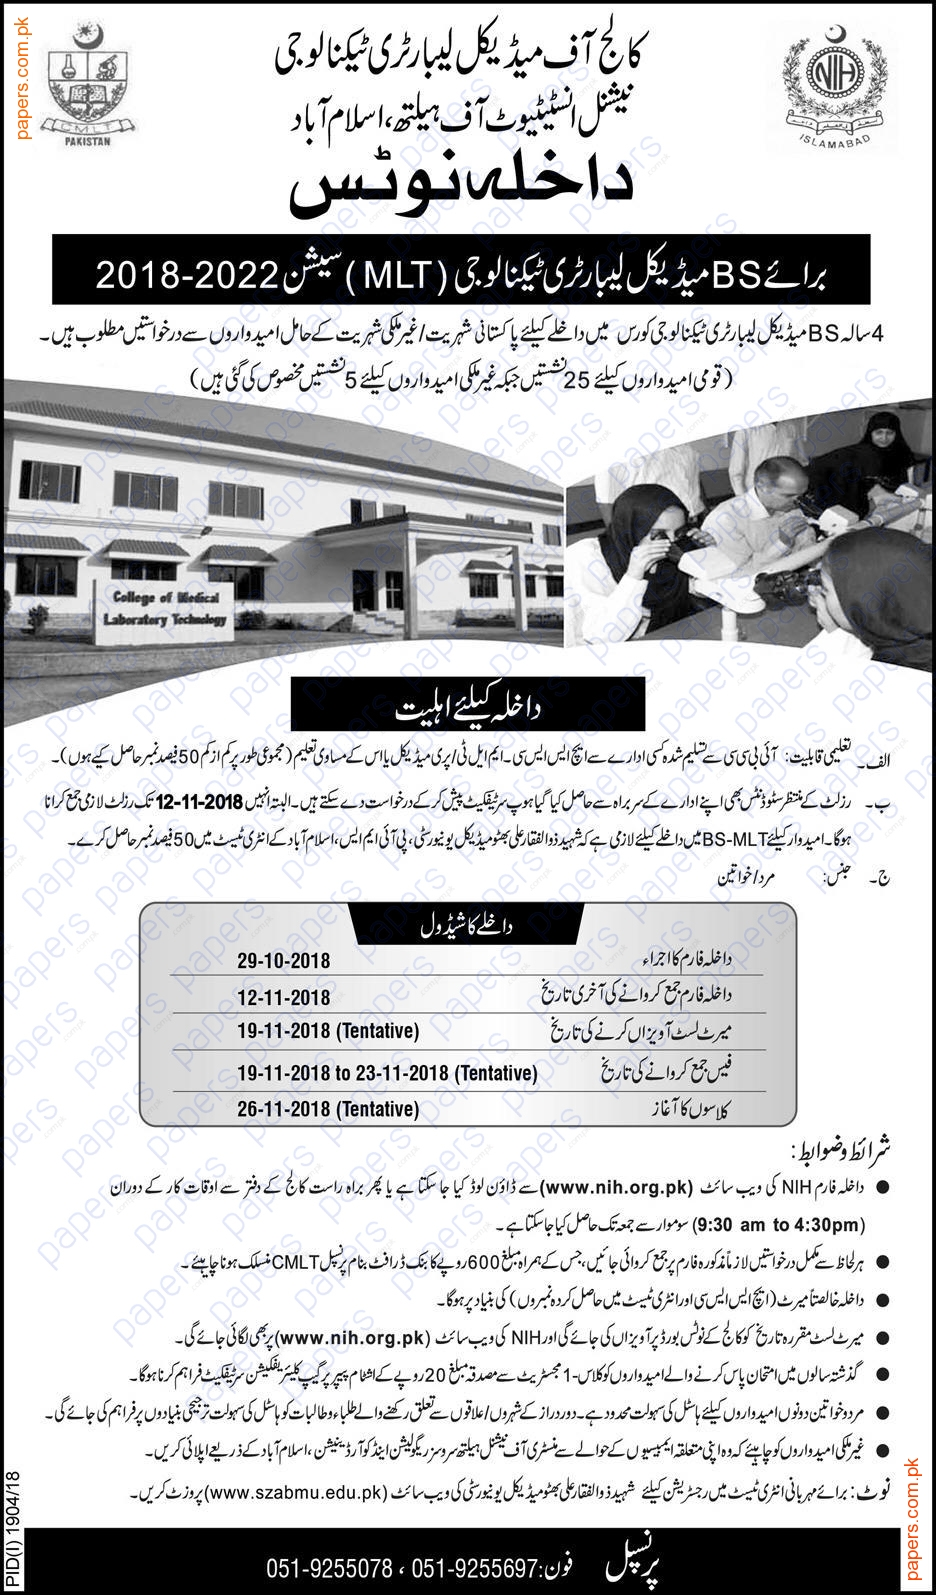 College of Medical Laboratory Technology National Institute of Health, Islamabad Admission Notice